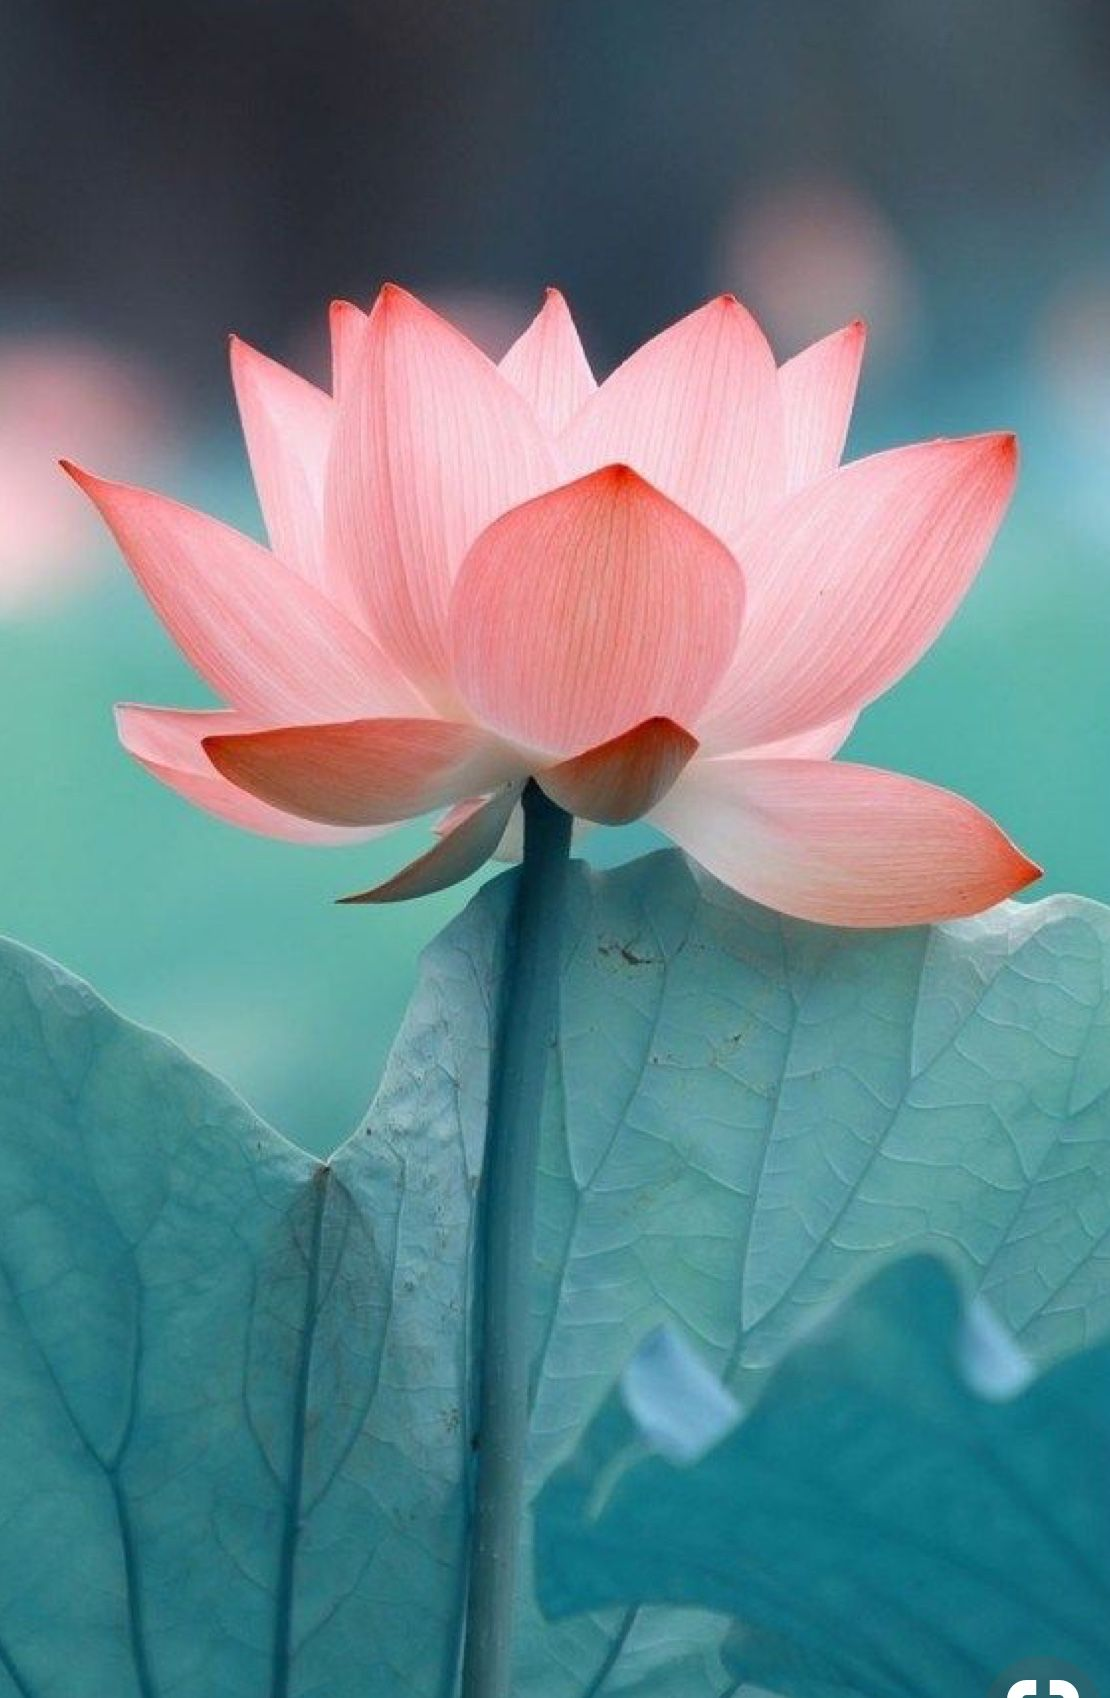 Flower Quotes In 2018 Meditation Spirituality January 27